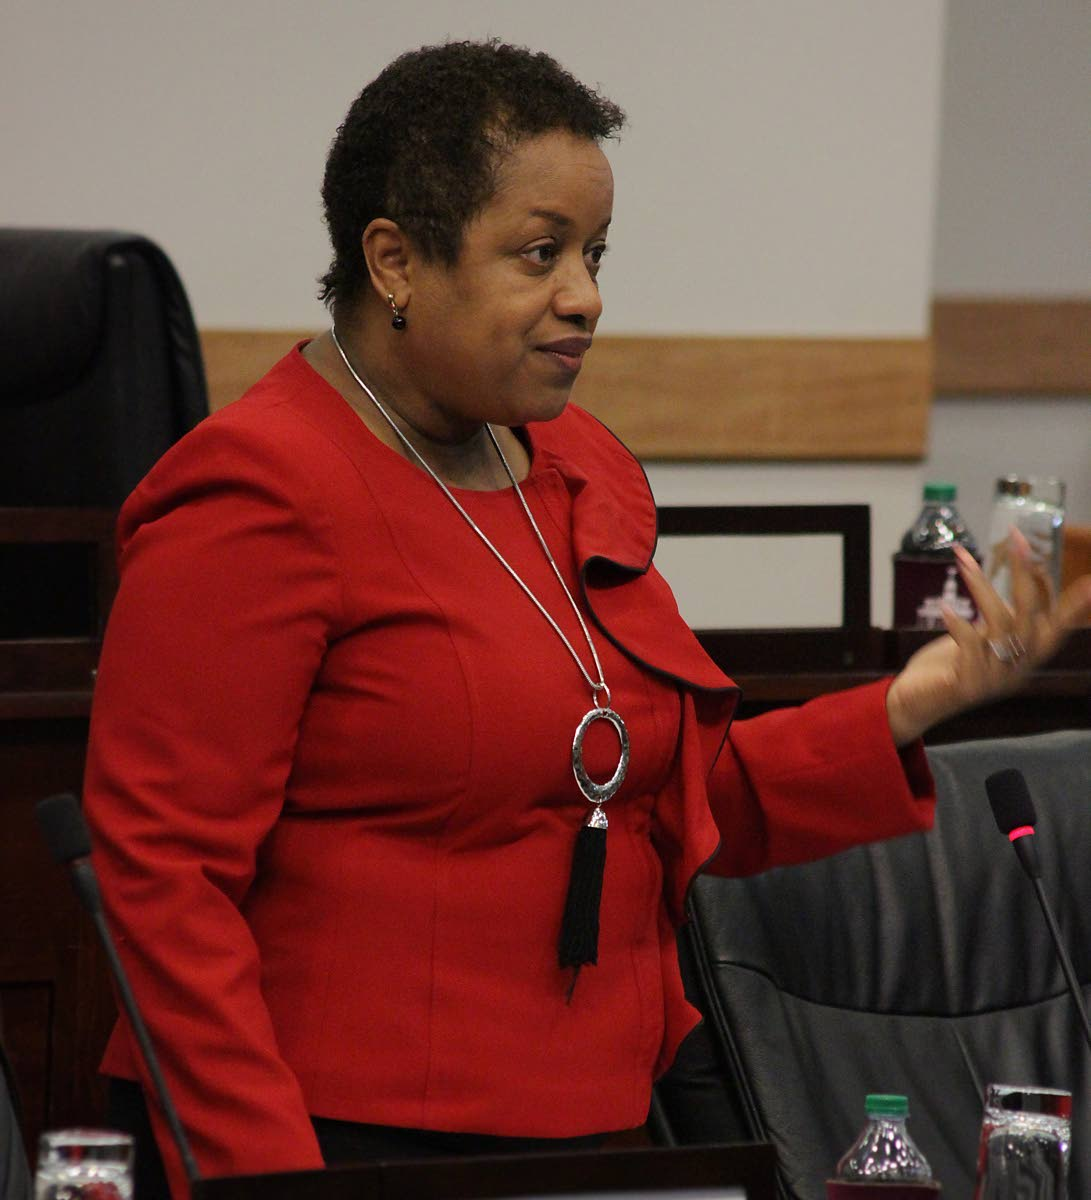 Minister in the Finance Ministry Allyson West speaks during a sitting of the Senate.